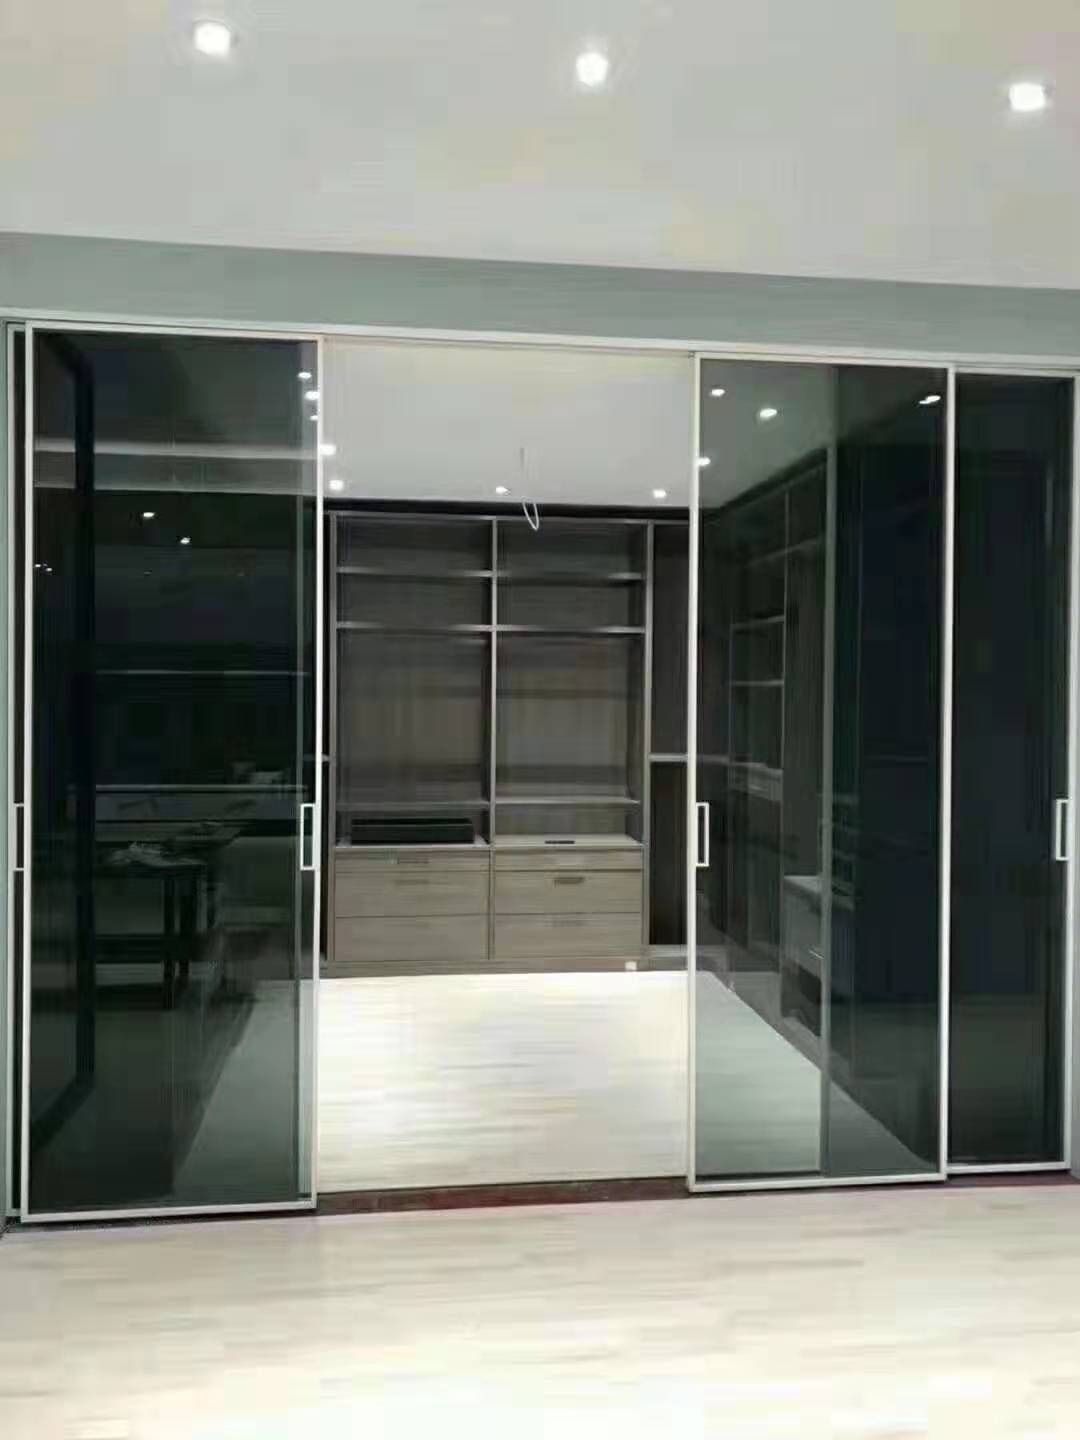 Automatic Door Make Our Life Easy Sliding Doors Sliding Door Systems Automatic Sliding Doors